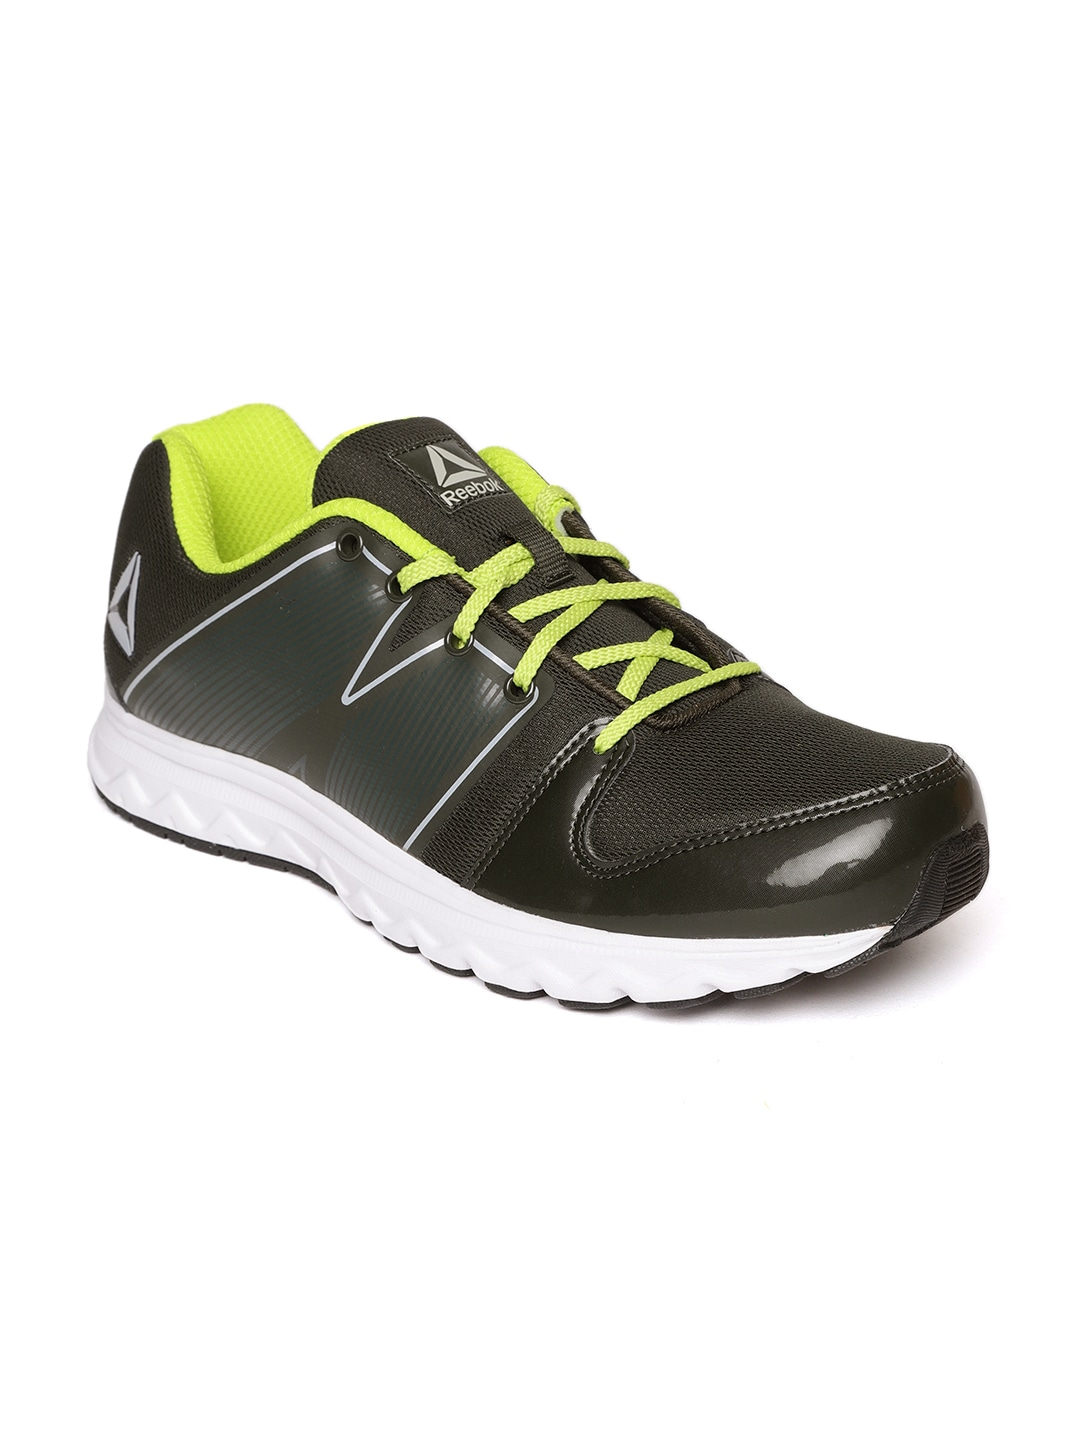 58f97d8ce19 Reebok Non Marking Sports Shoes - Buy Reebok Non Marking Sports Shoes  online in India